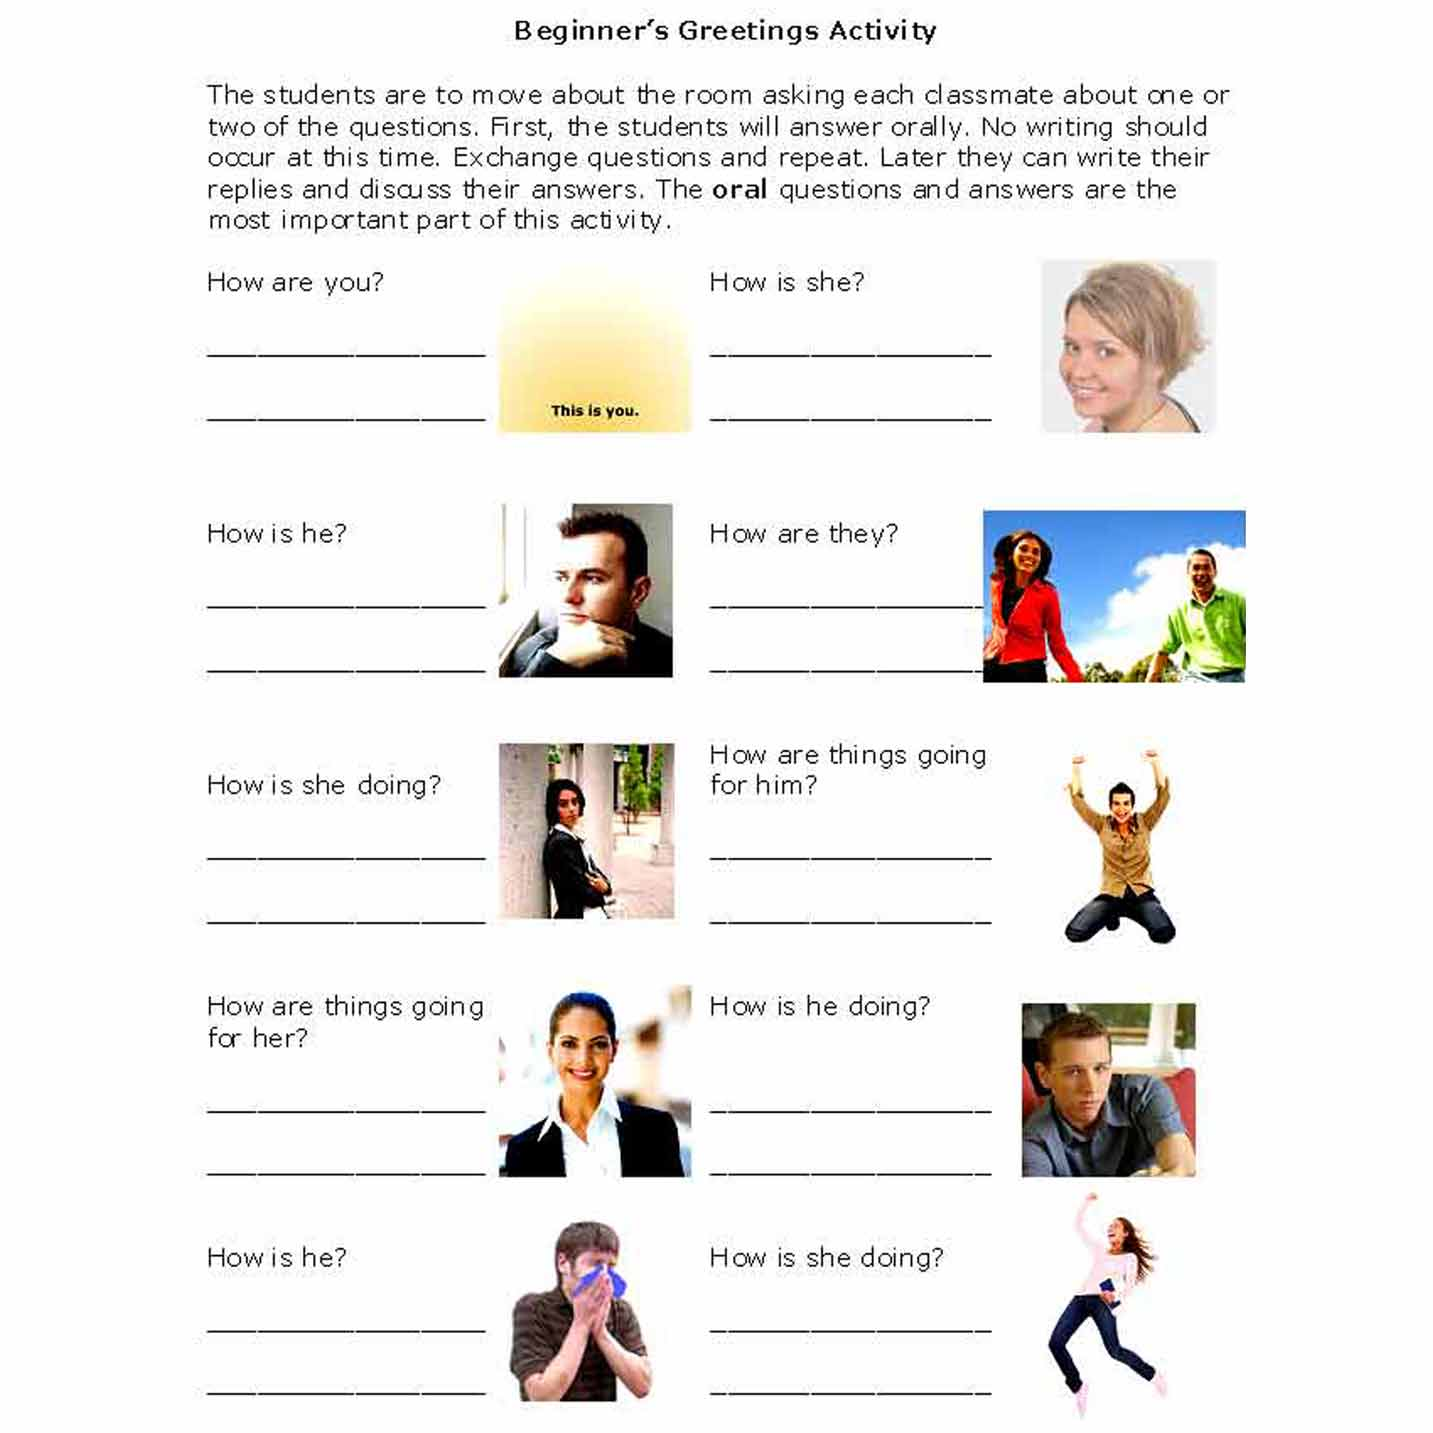 Activities That Introduce Beginners To Friendly Greetings